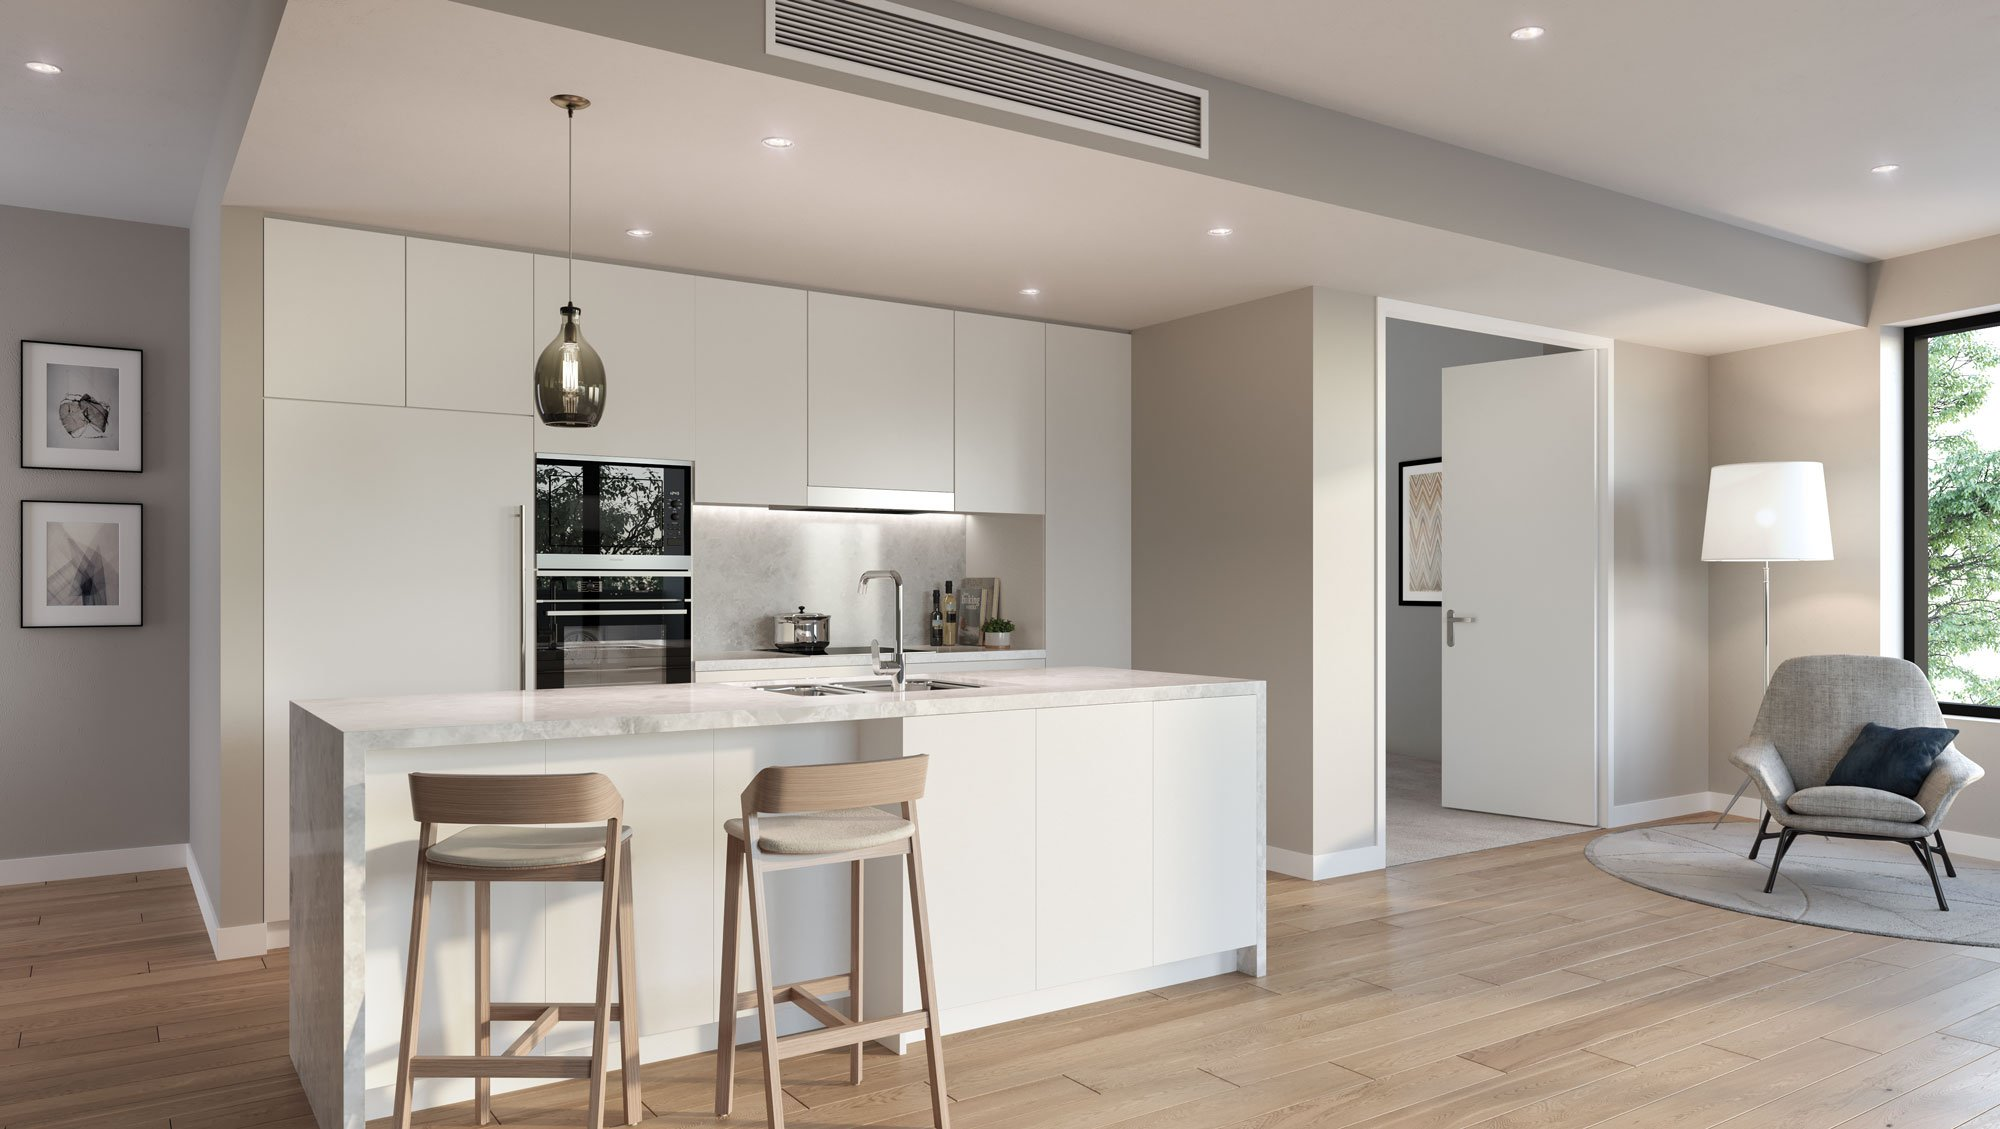 Apartment kitchen interior at The Orchards with Caesarstone bench tops and Miele appliances (artist's impression)